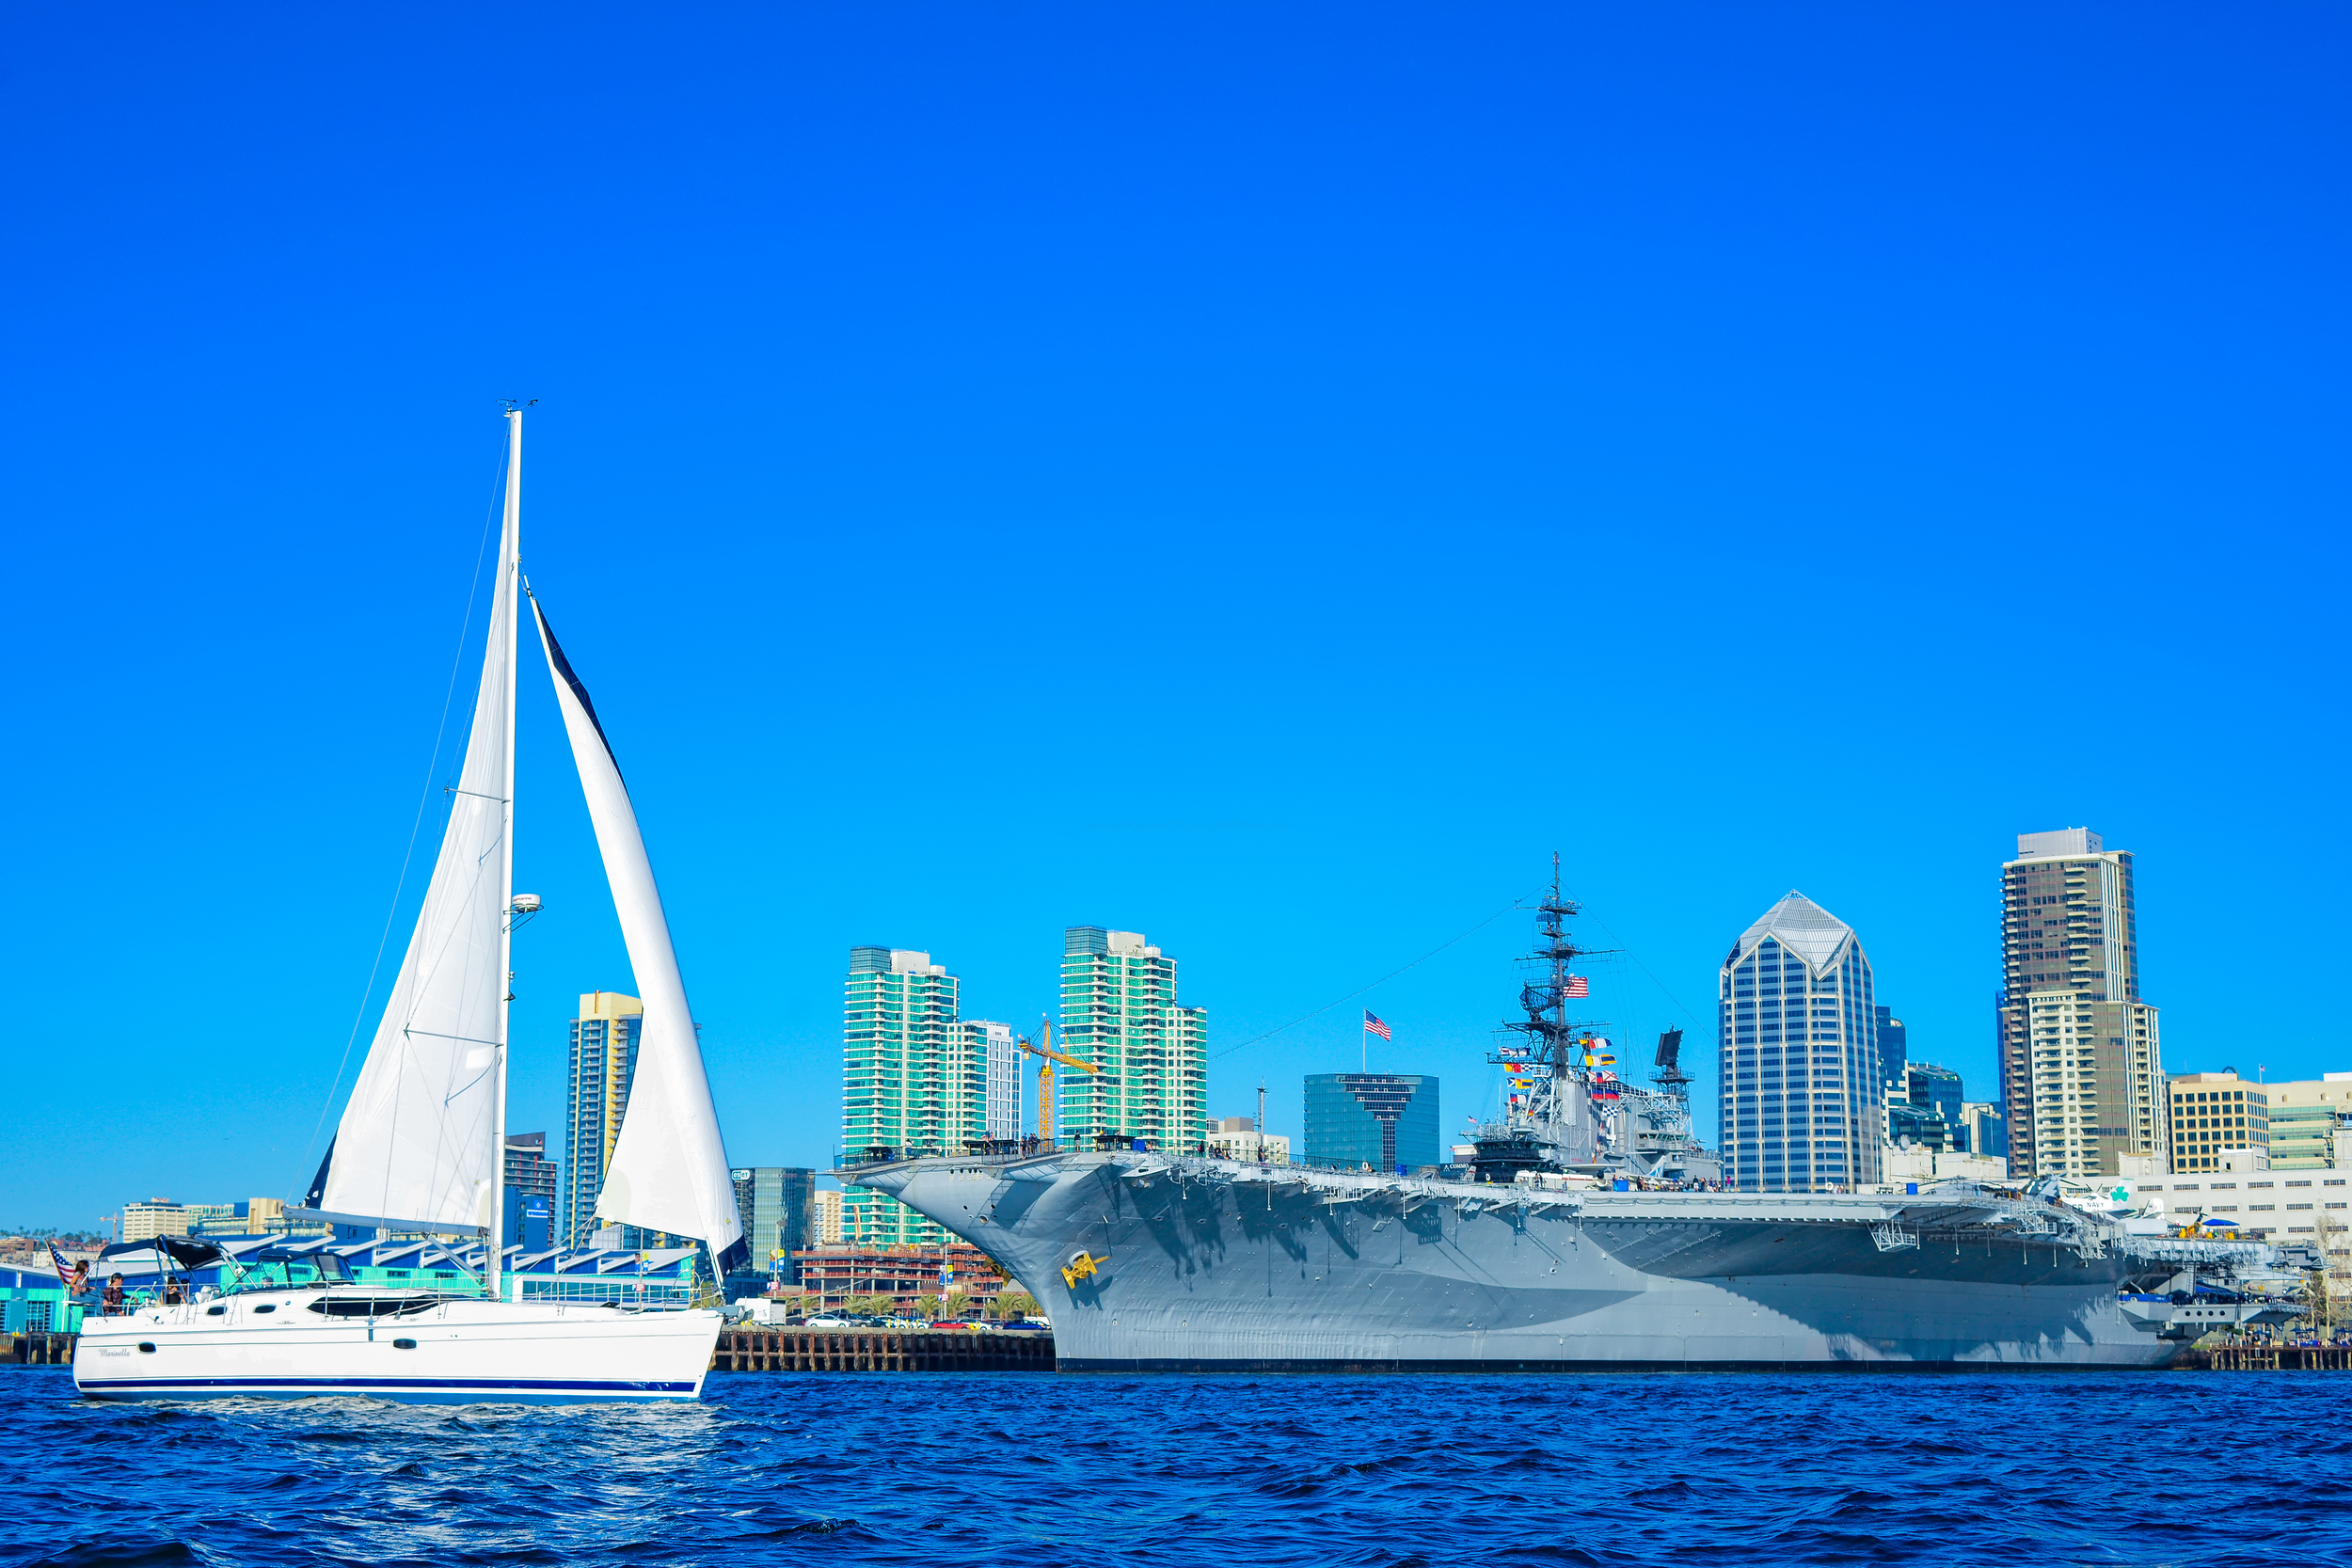 Sailing San Diego by the Midway